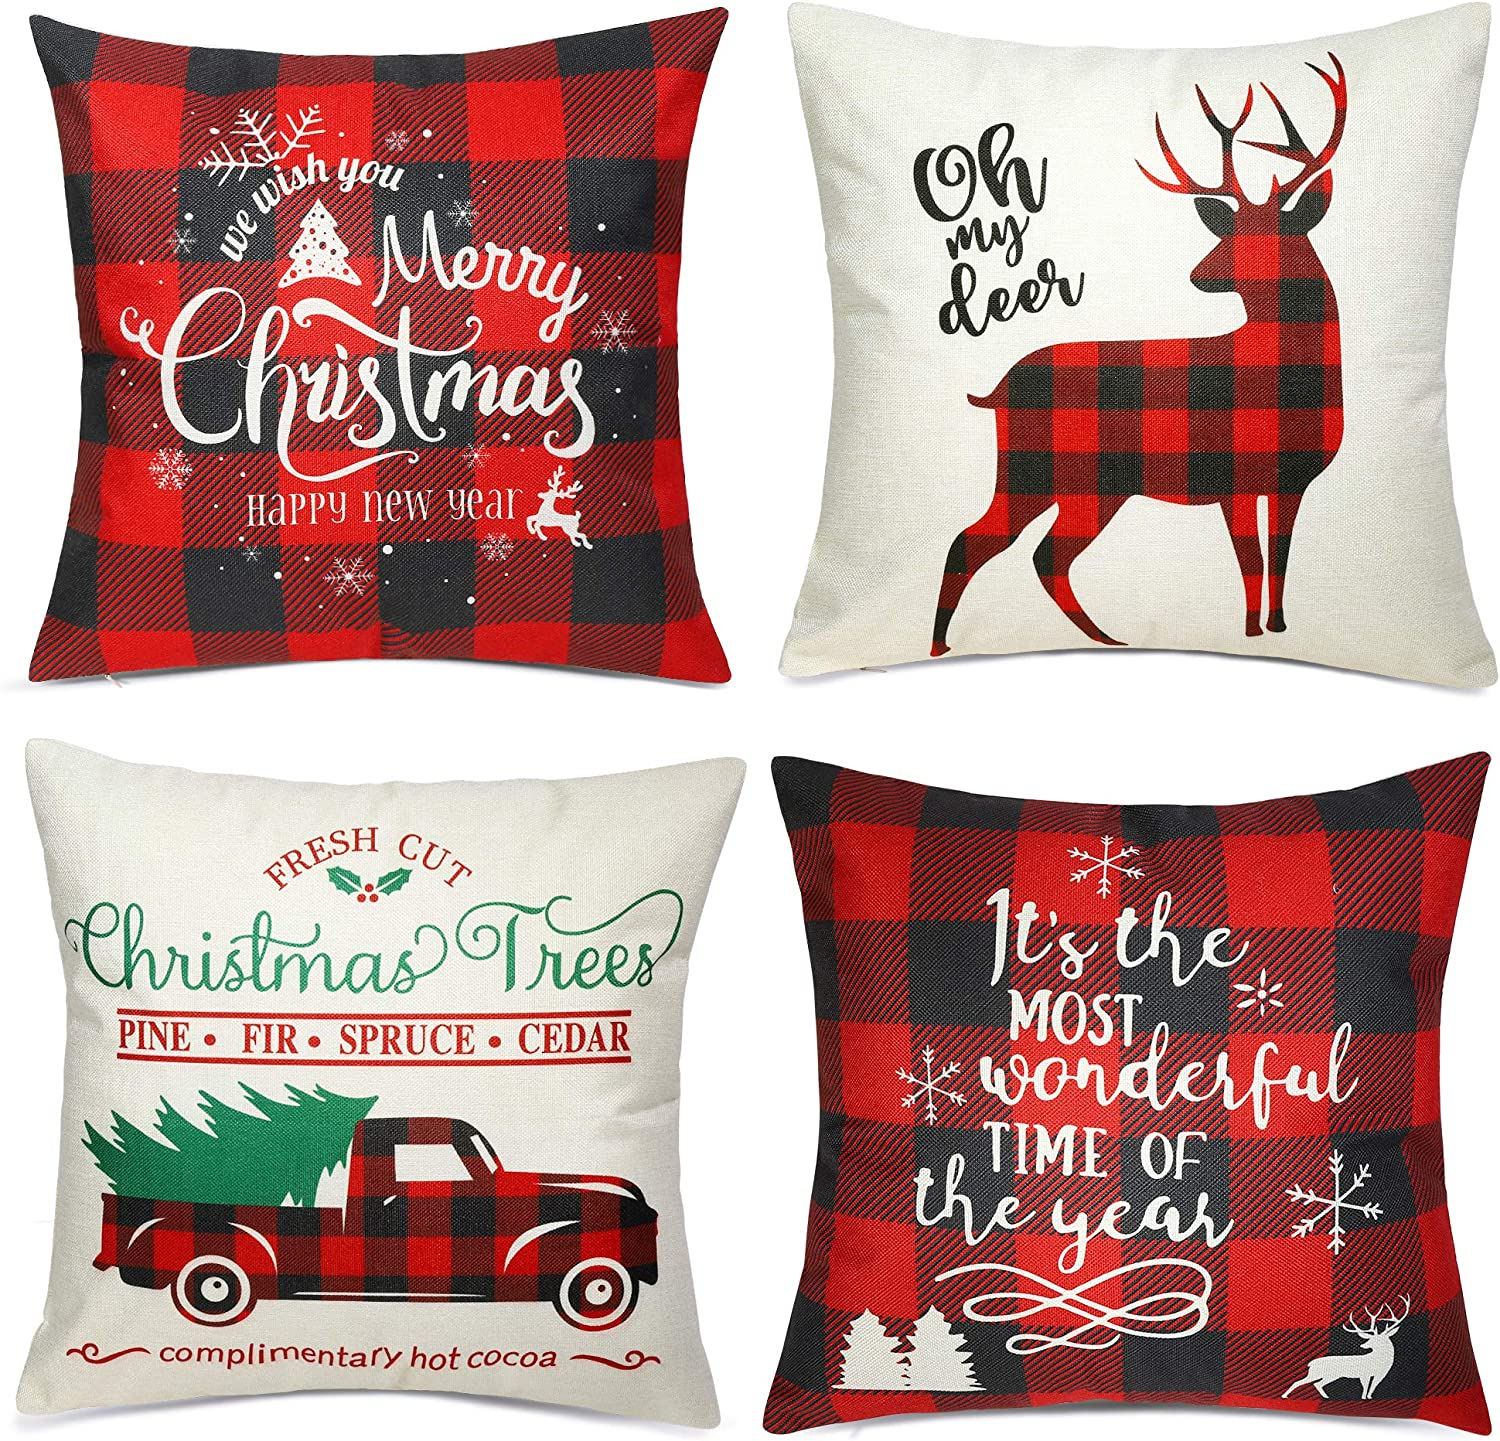 Christmas Pillow Covers 18×18 Inch Farmhouse Deer Pillowcase Black and Red Plaid Linen Pillow Covers for Sofa Couch Christmas Decorations Throw Pillow Covers Holiday Decor Set of 4